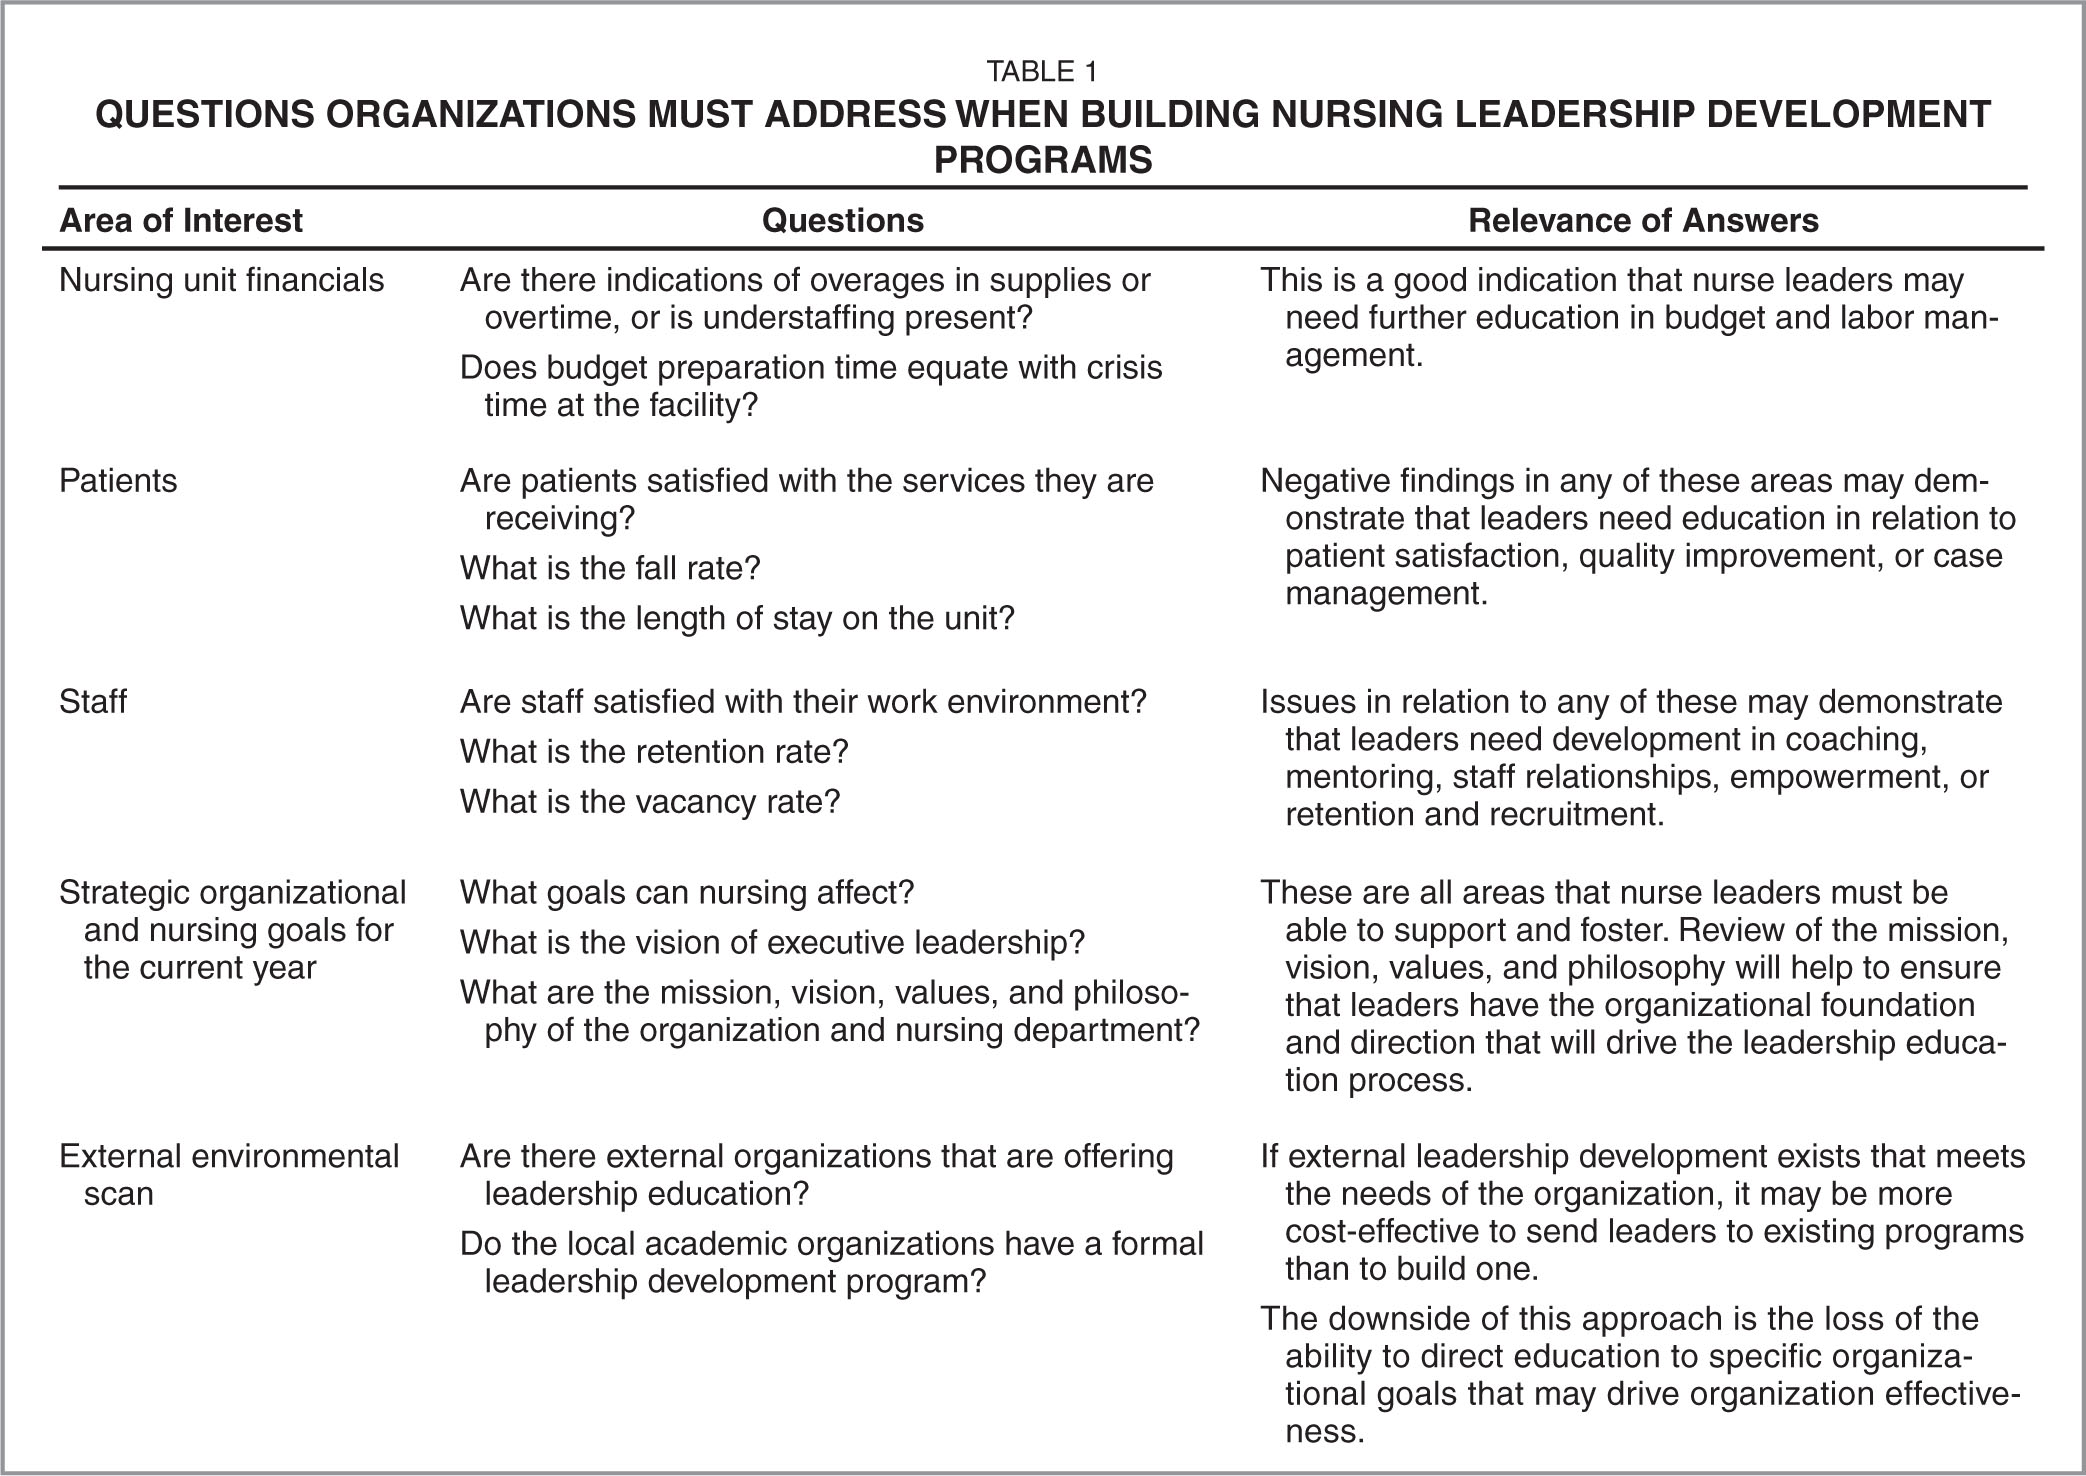 Questions Organizations Must Address when Building Nursing Leadership Development Programs